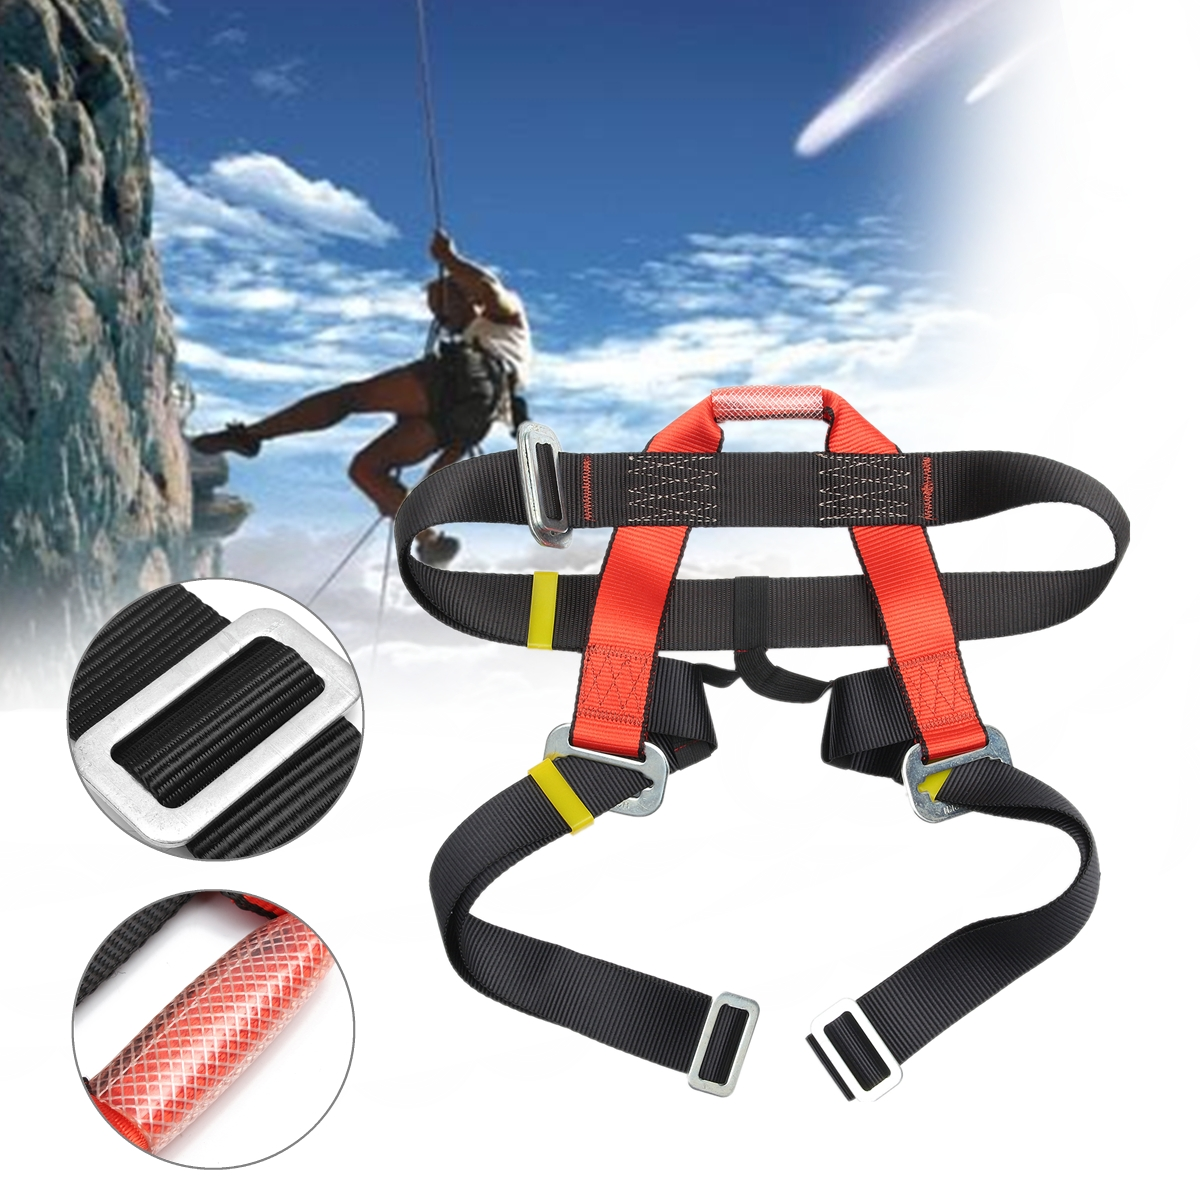 Outdoor Climbing Safety Belt Half Body Protecting for Rock Climbing Downhill Harness Rappel Safety Belt climbing accessoriesOutdoor Climbing Safety Belt Half Body Protecting for Rock Climbing Downhill Harness Rappel Safety Belt climbing accessories